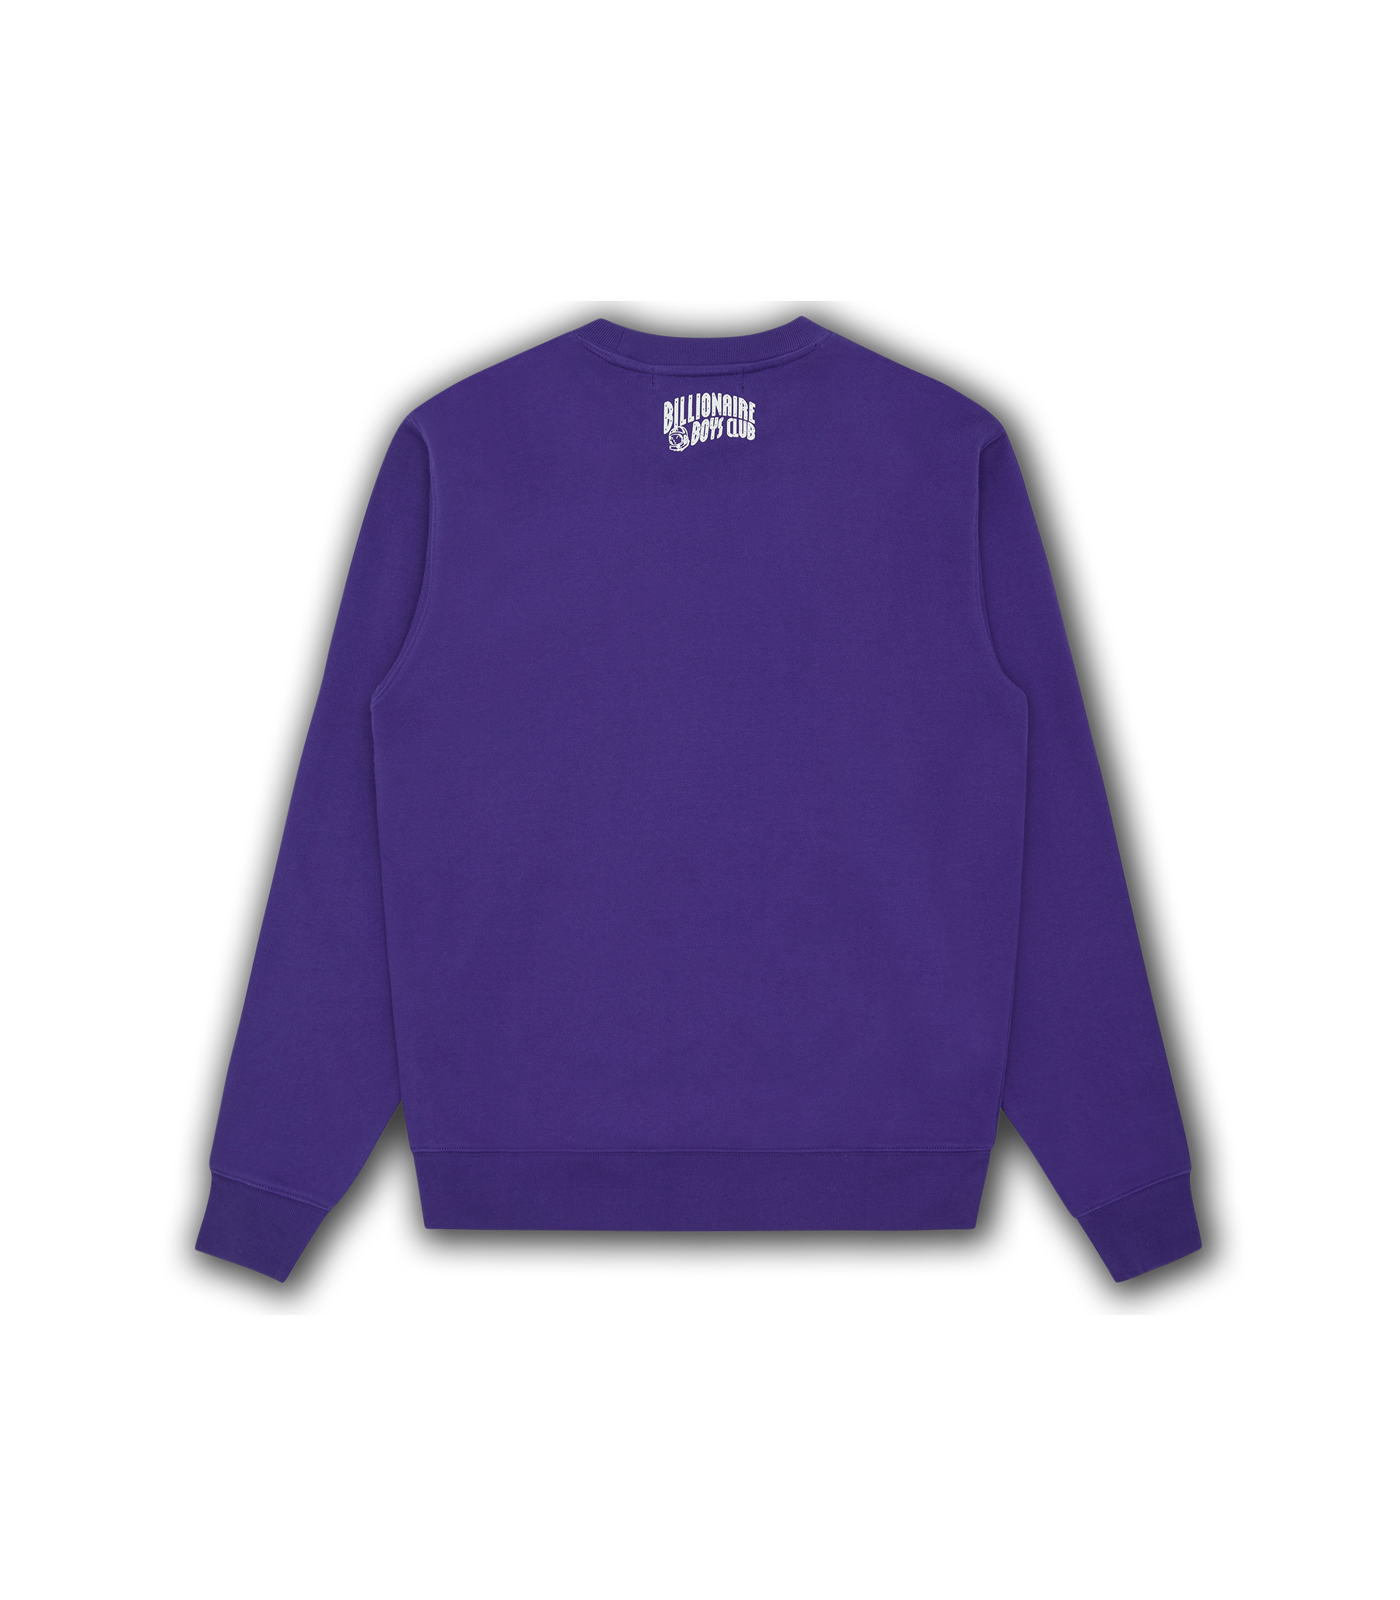 HEART & MIND CREWNECK - PURPLE